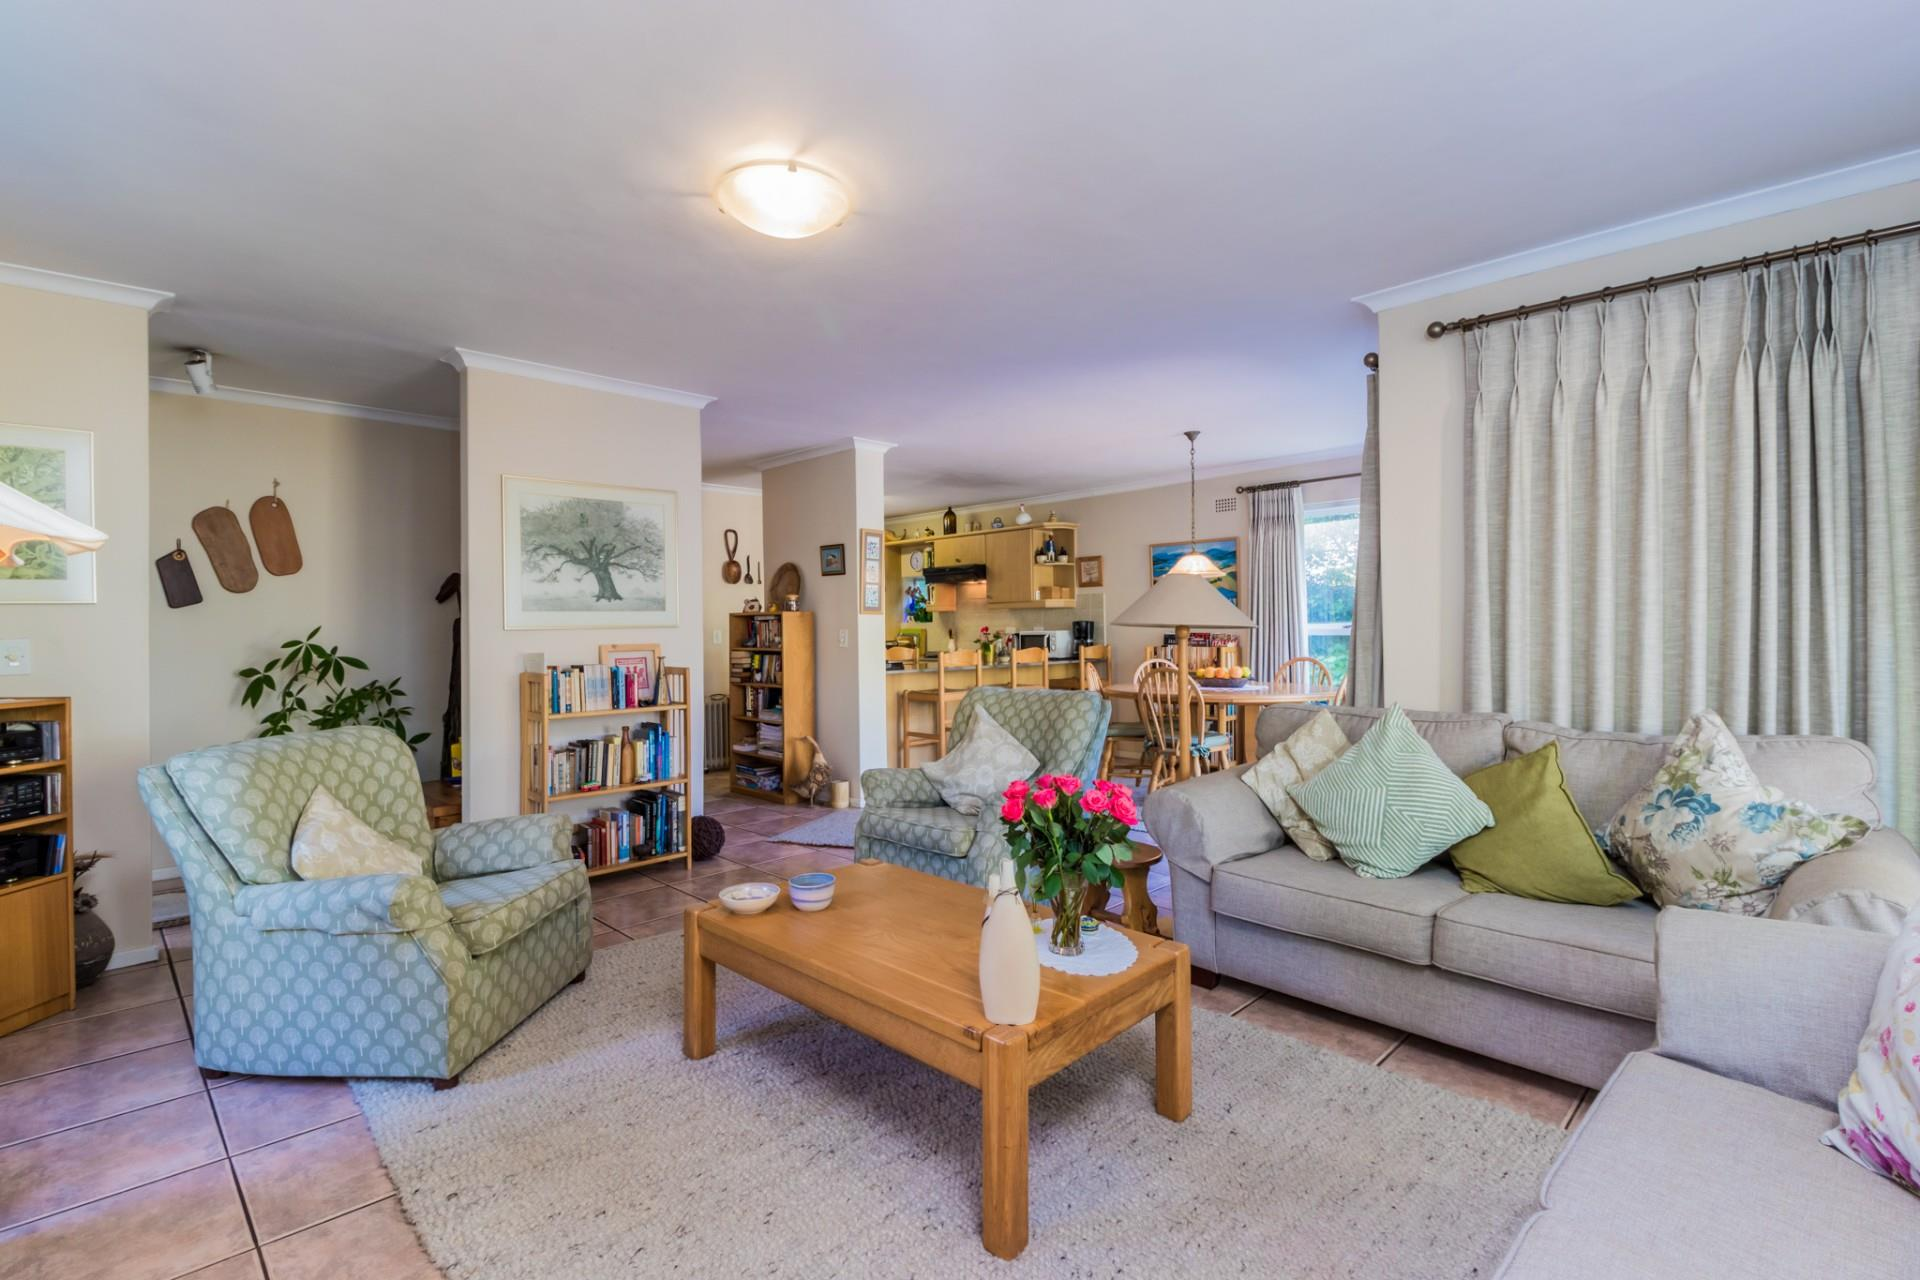 3 Bedroom House For Sale in Hout Bay Central